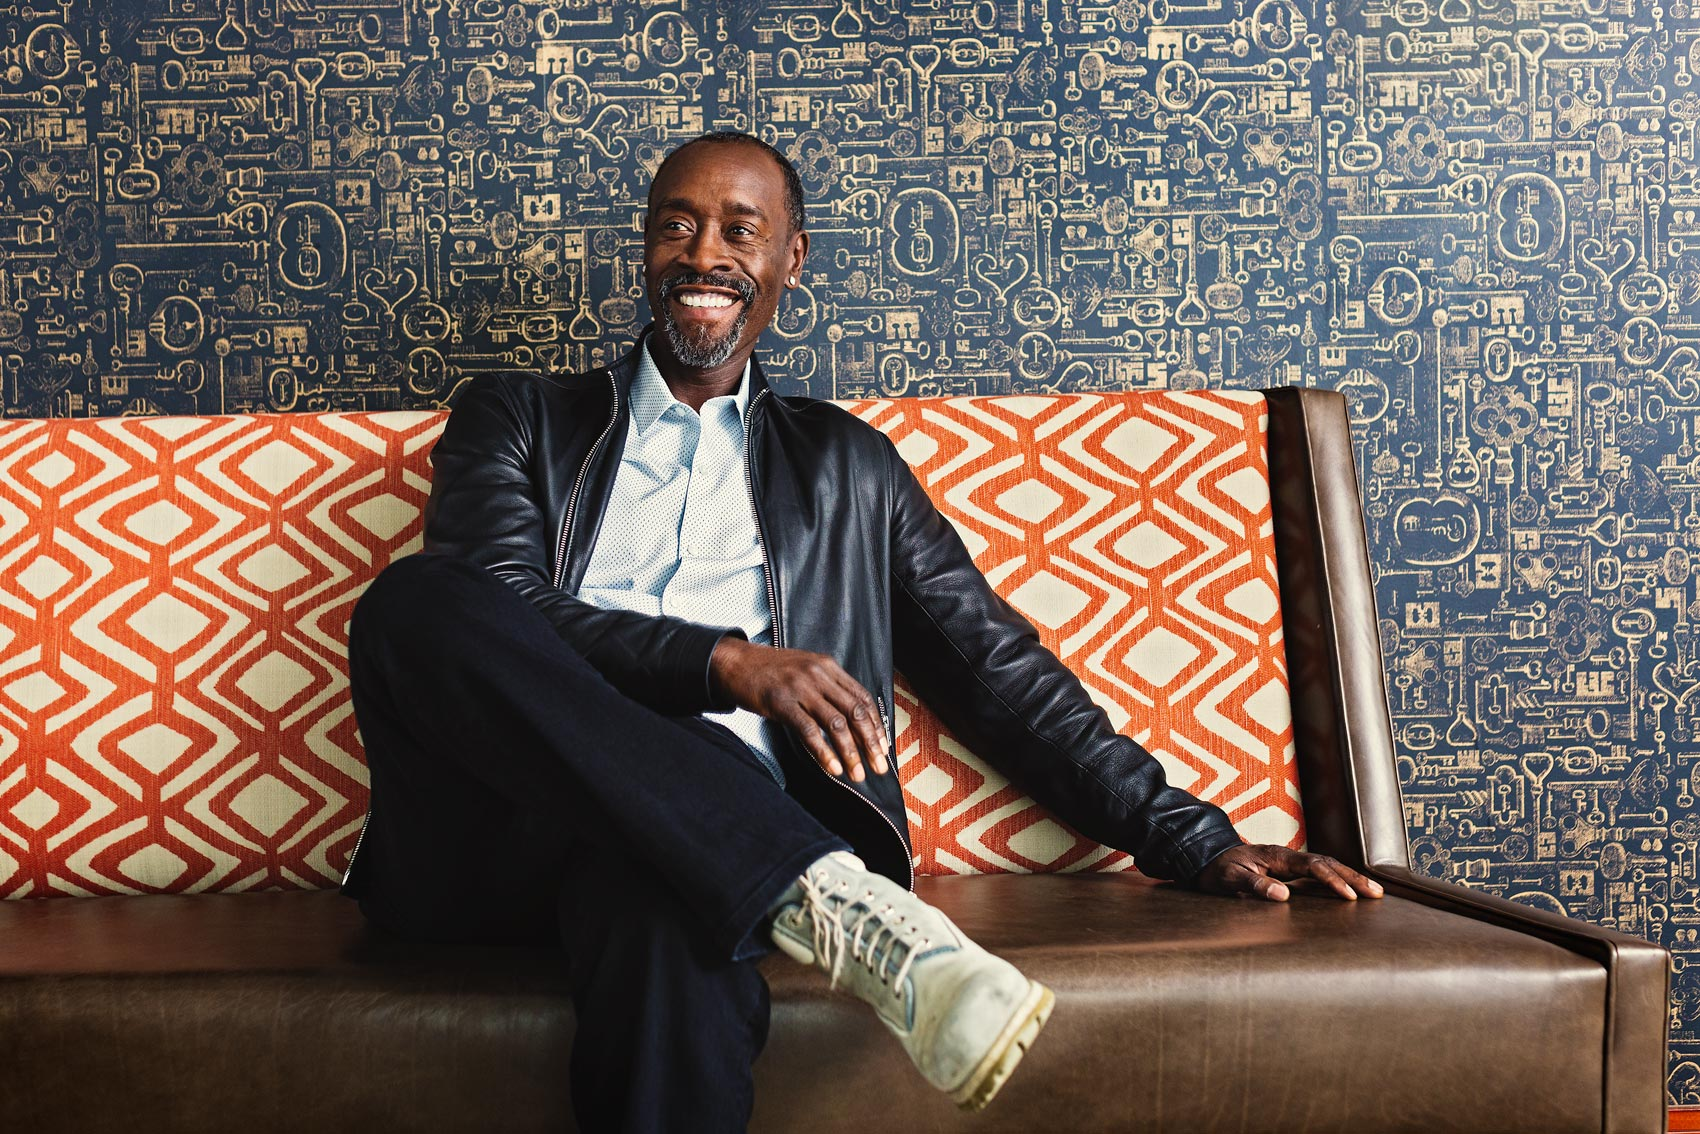 war machine actor don cheadle sitting on couch for washington dc celebrity photography